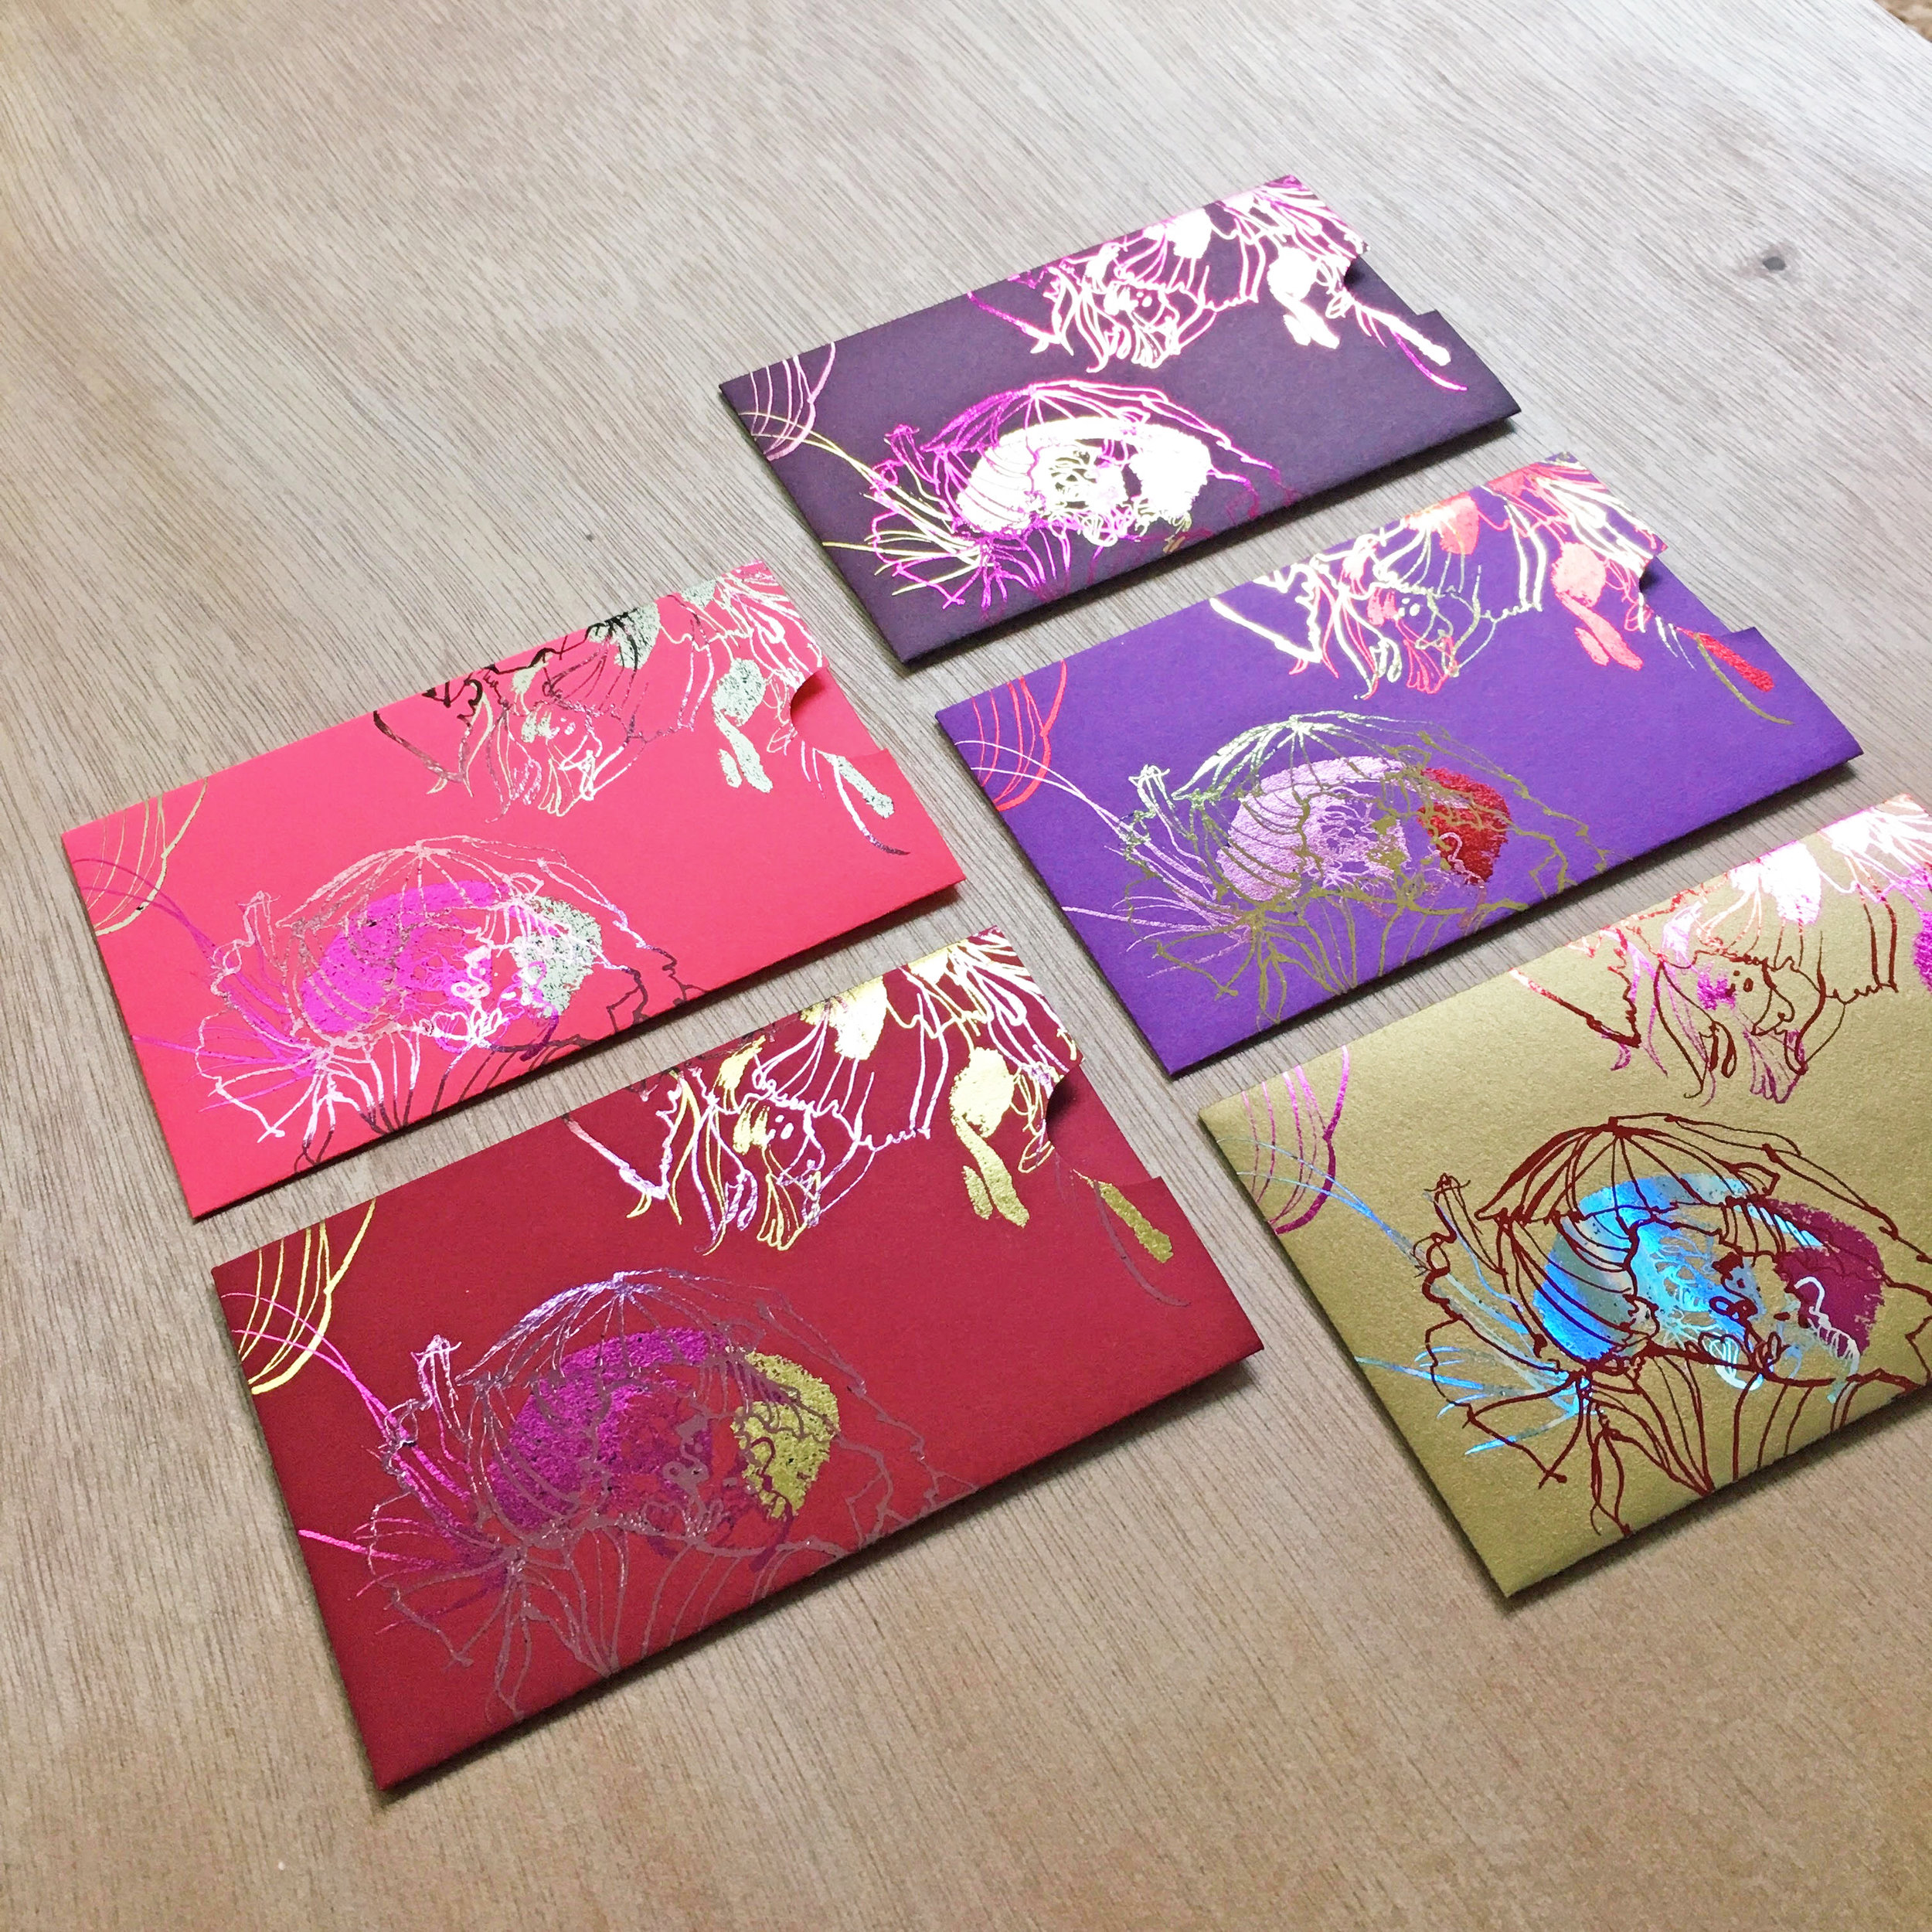 Chinese Red Envelopes • 紅包